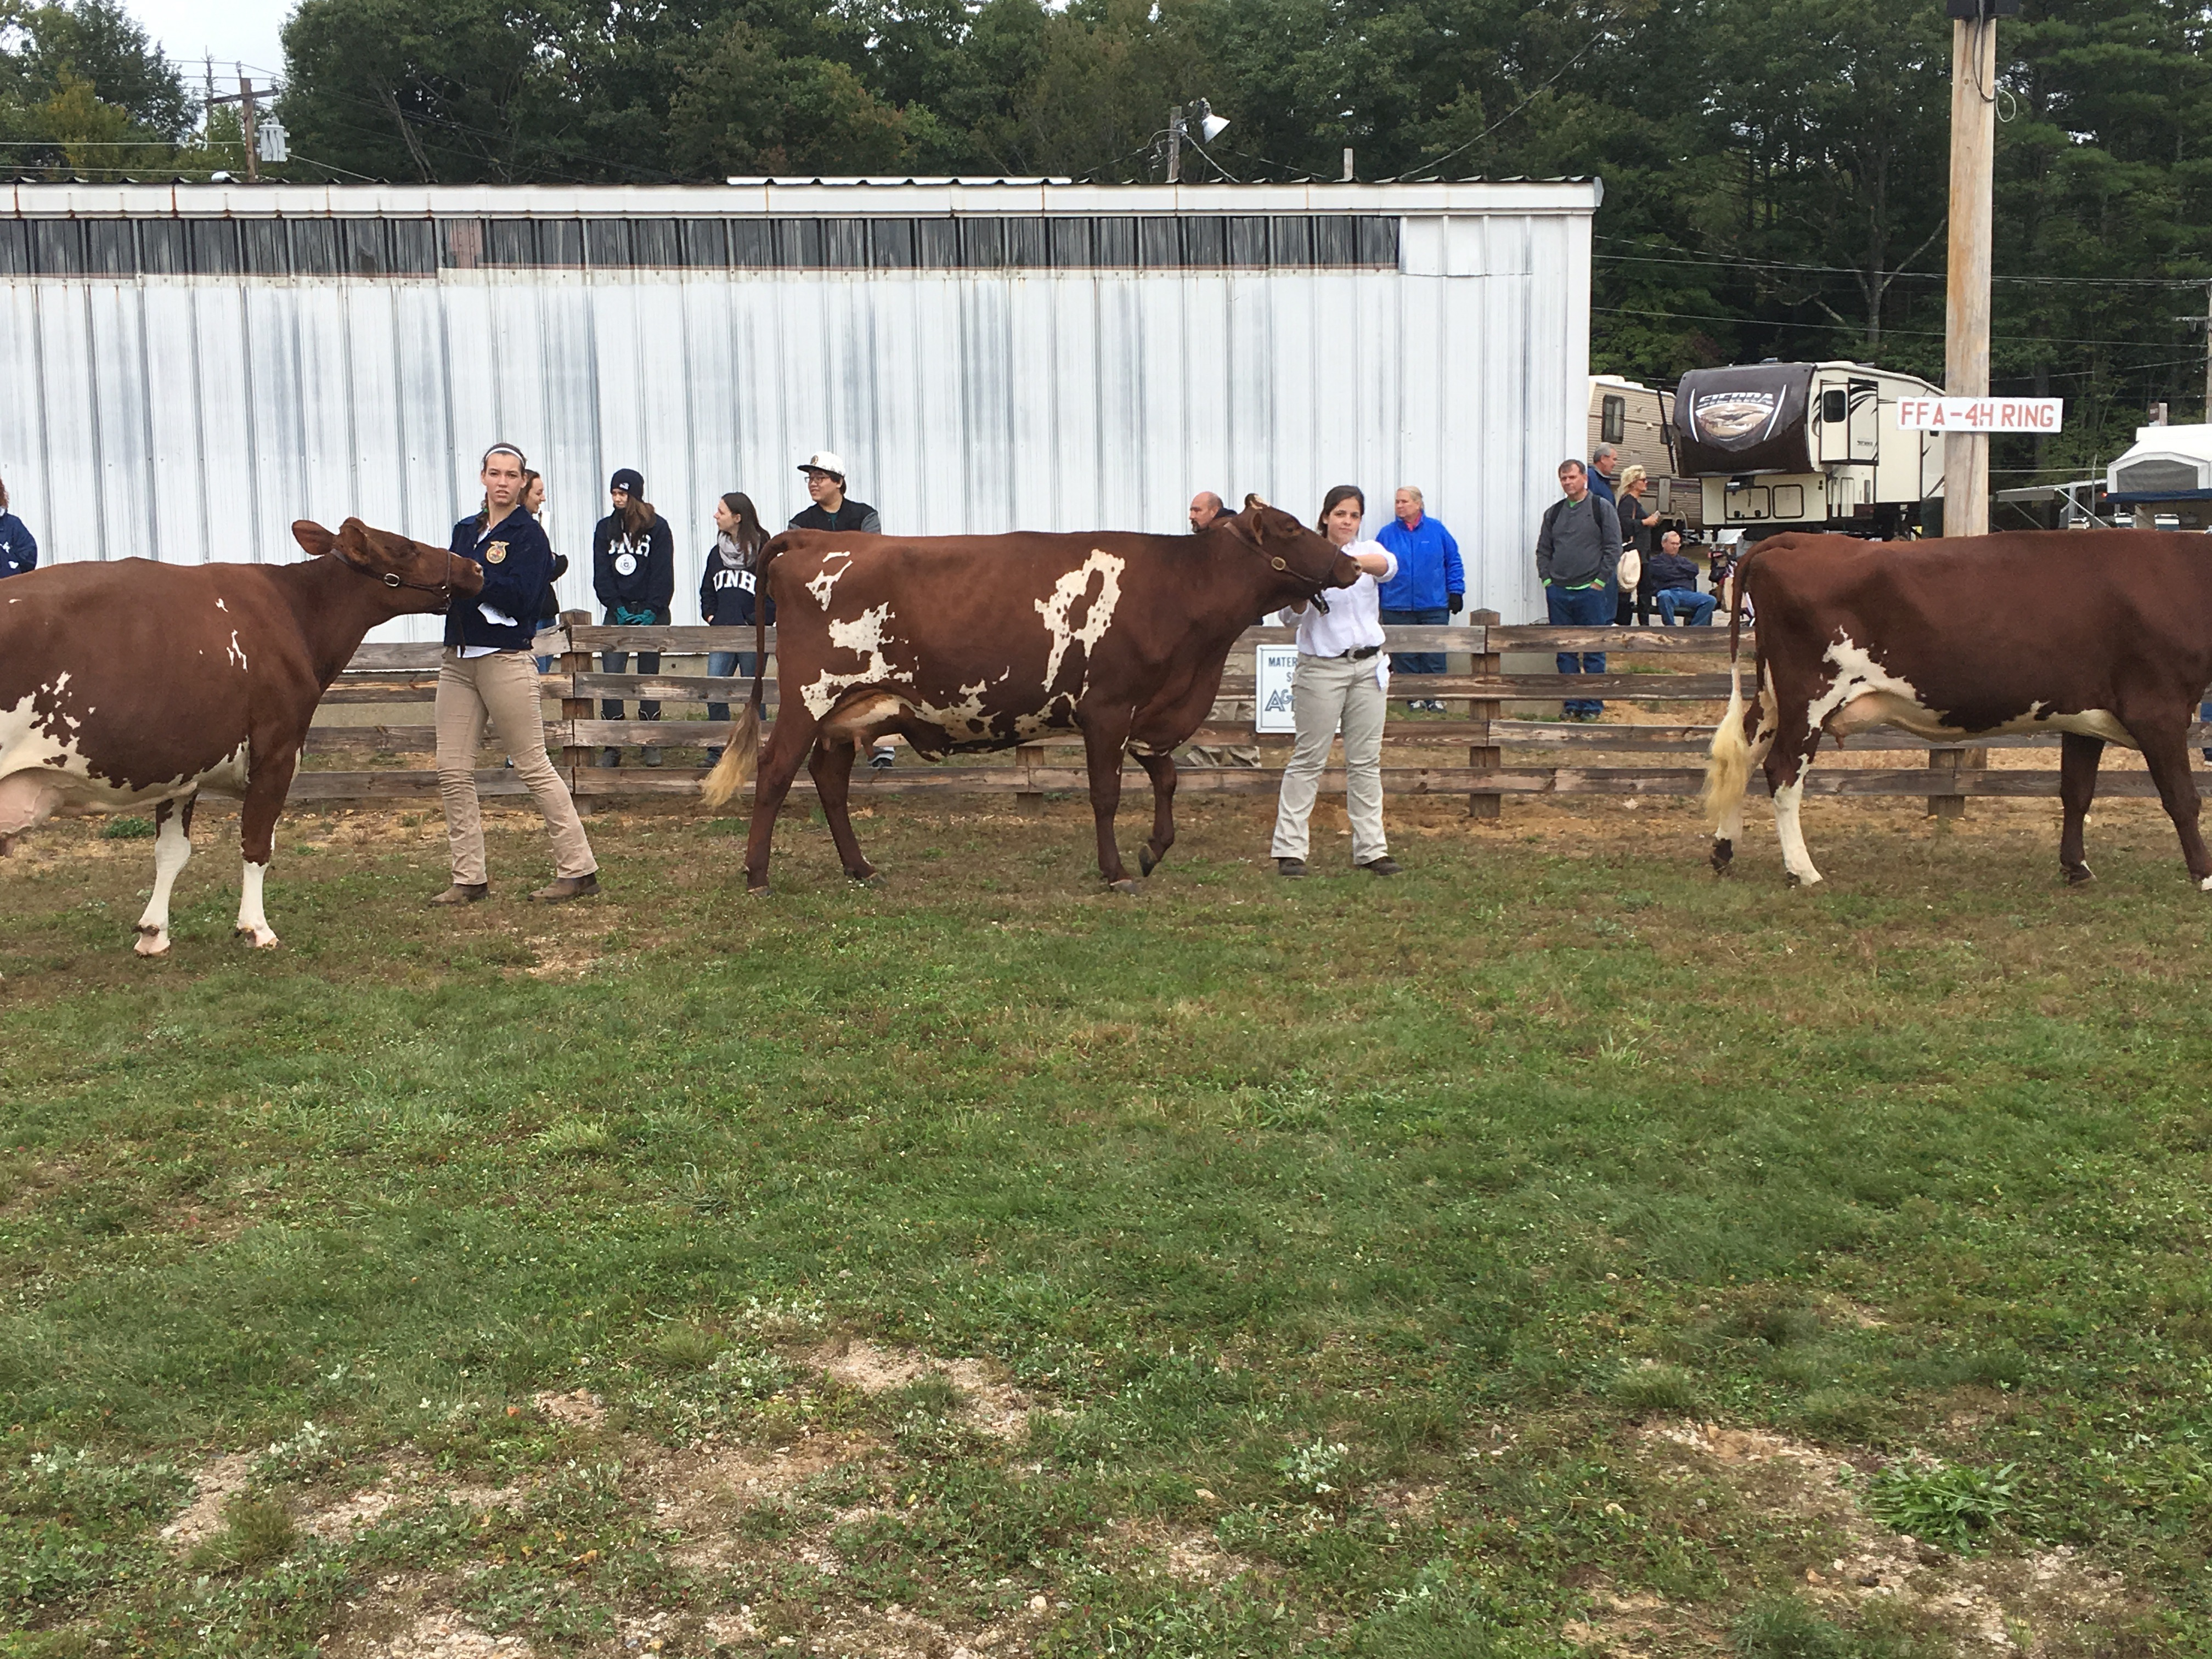 An annual event for many states is the dairy show and showmanship contest